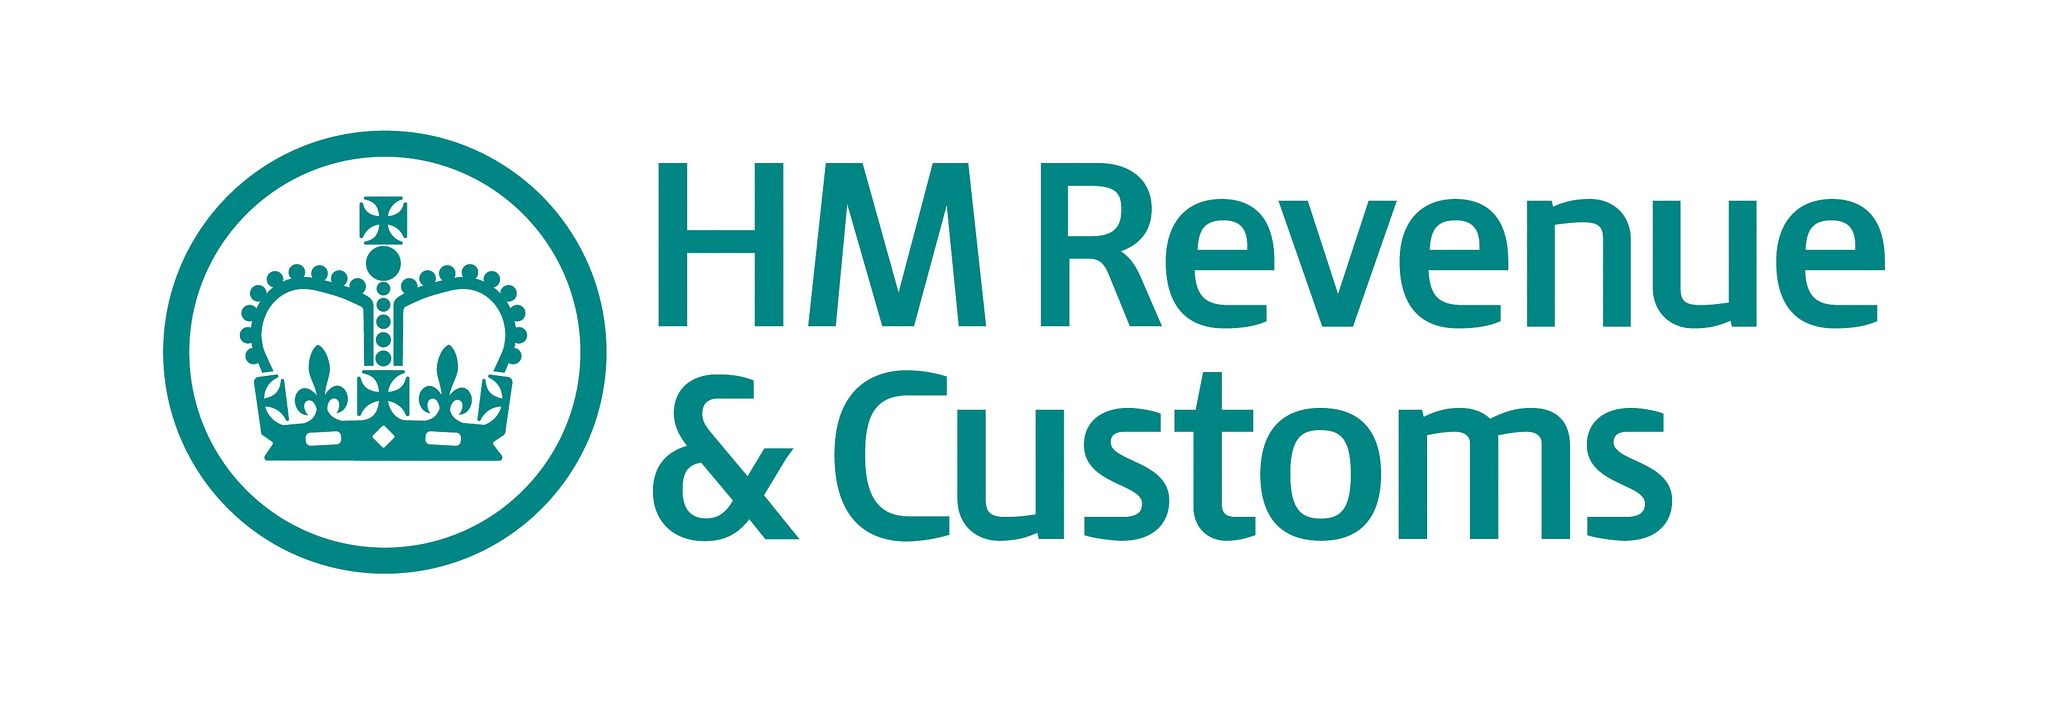 HMRC Tax refund, Pay calculator, Student loan payment